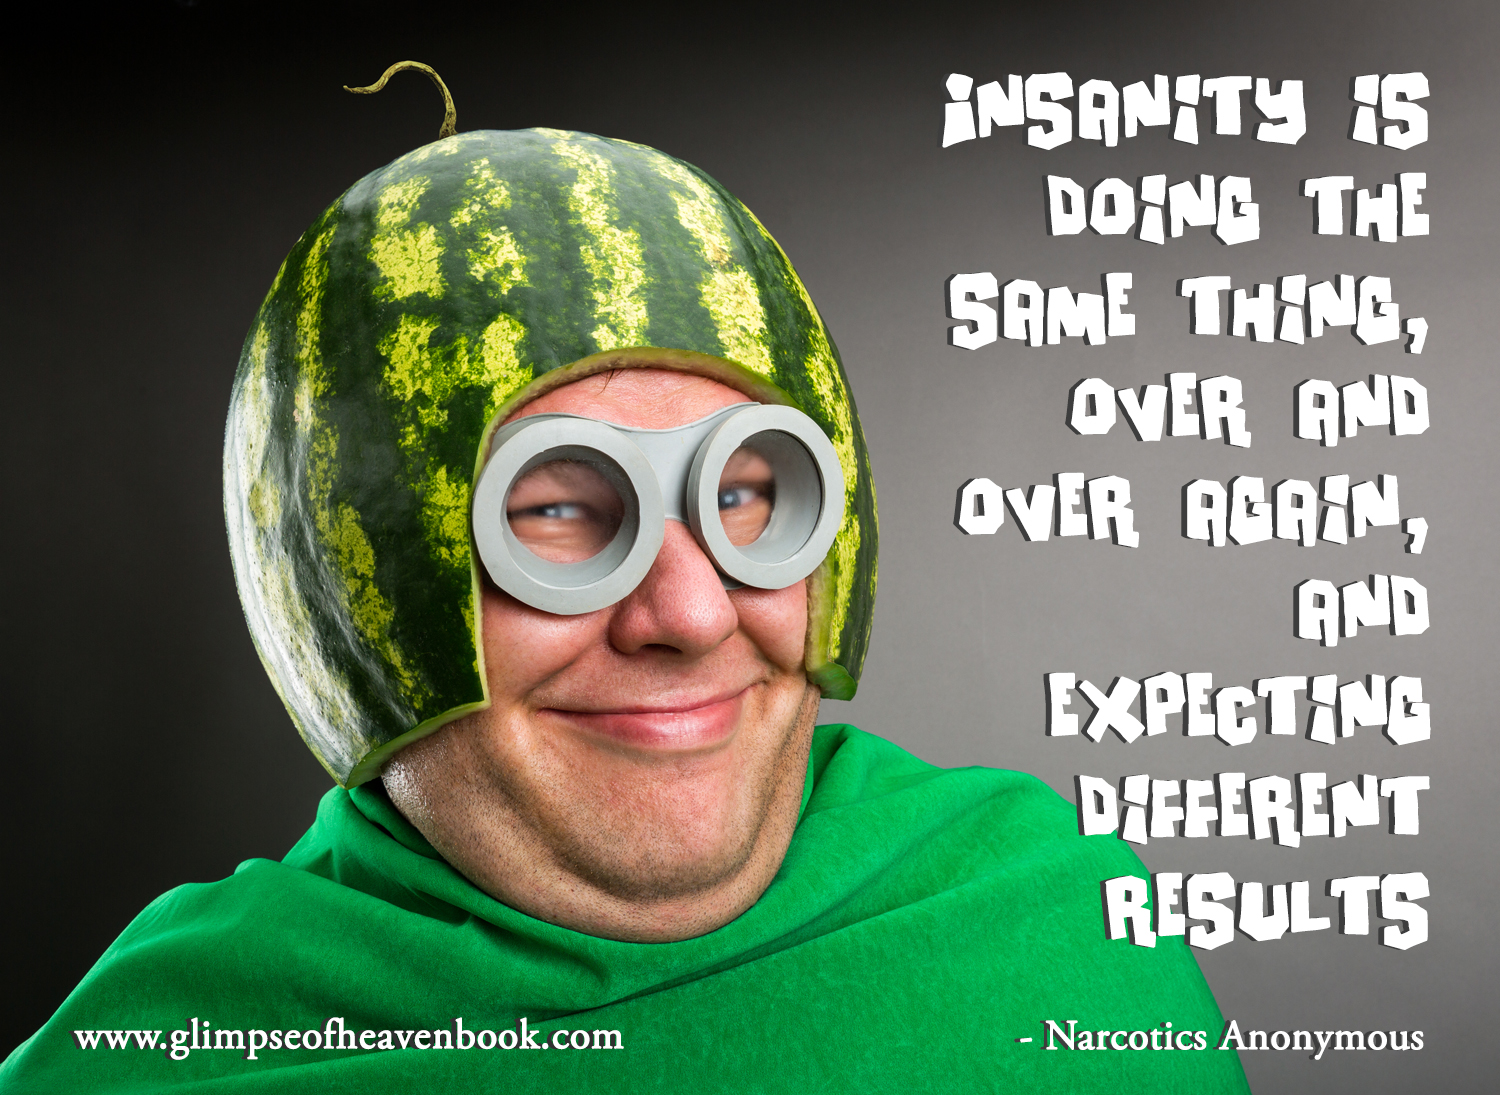 Insanity watermelon man shutterstock_157354478